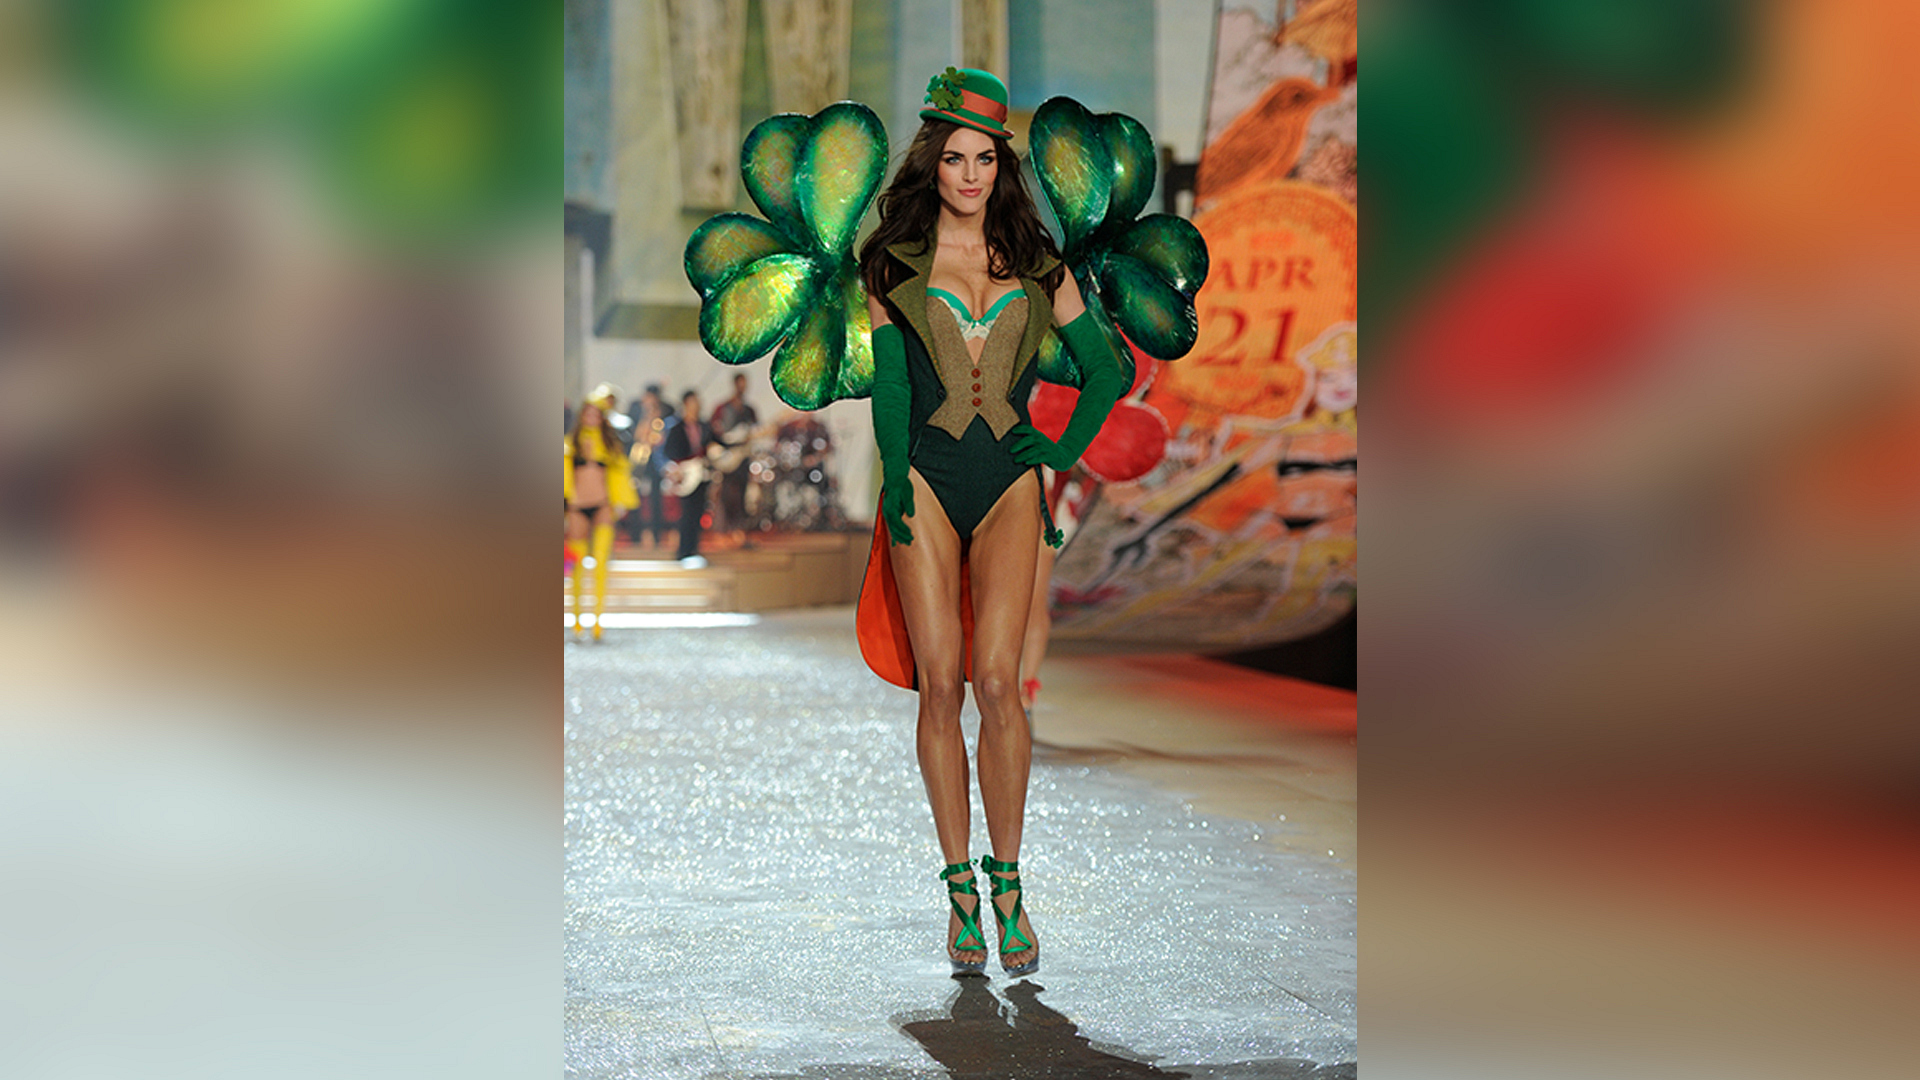 Hilary Rhoda served as a good luck charm in 2012.